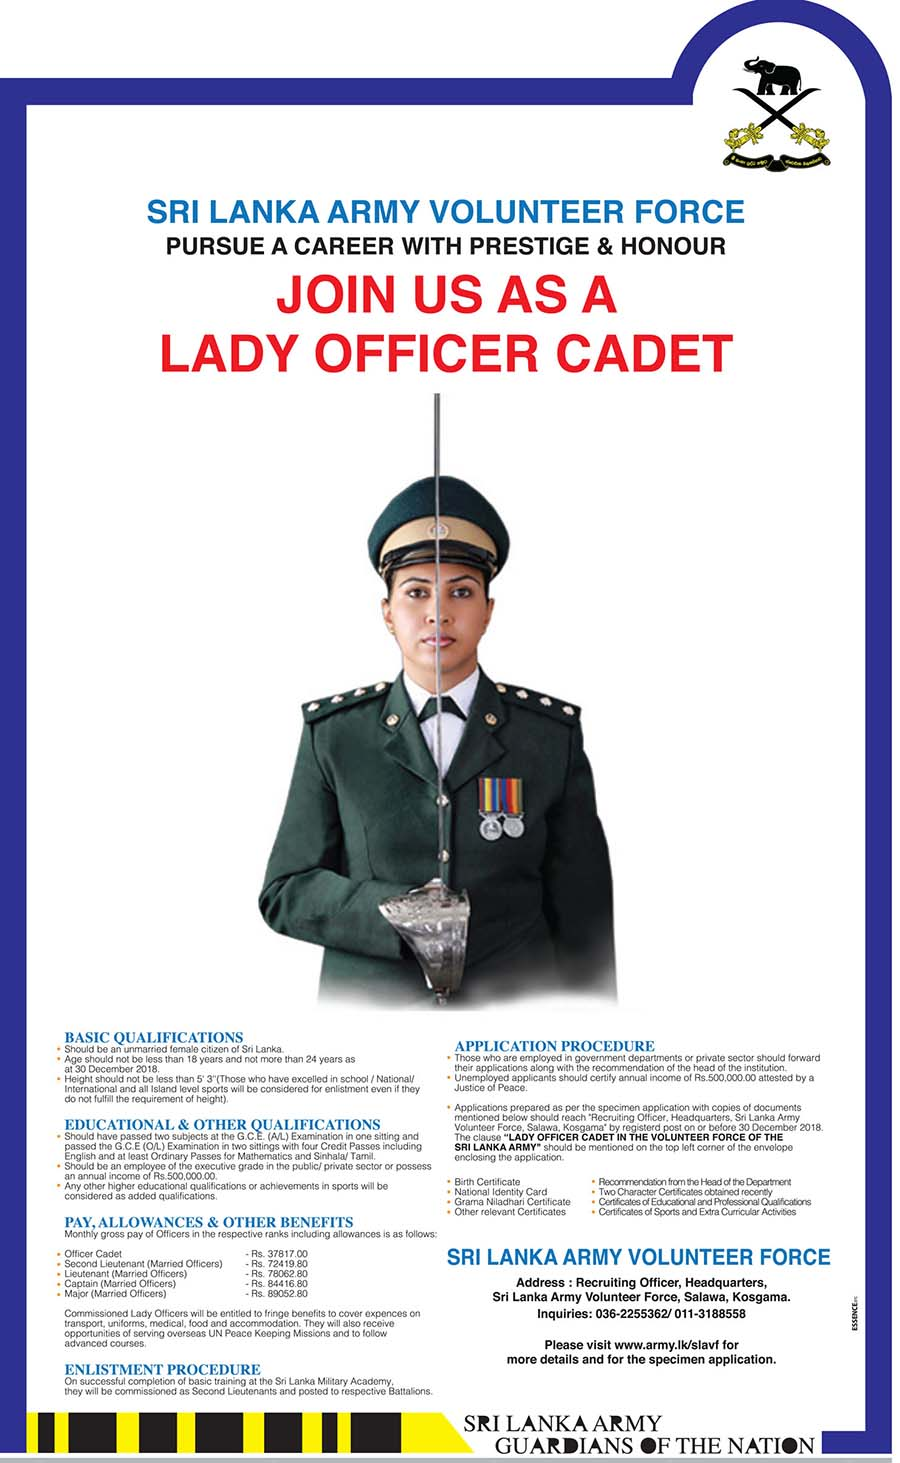 Recruitment of Lady Officer Cadet Vacancies at Sri Lanka Army